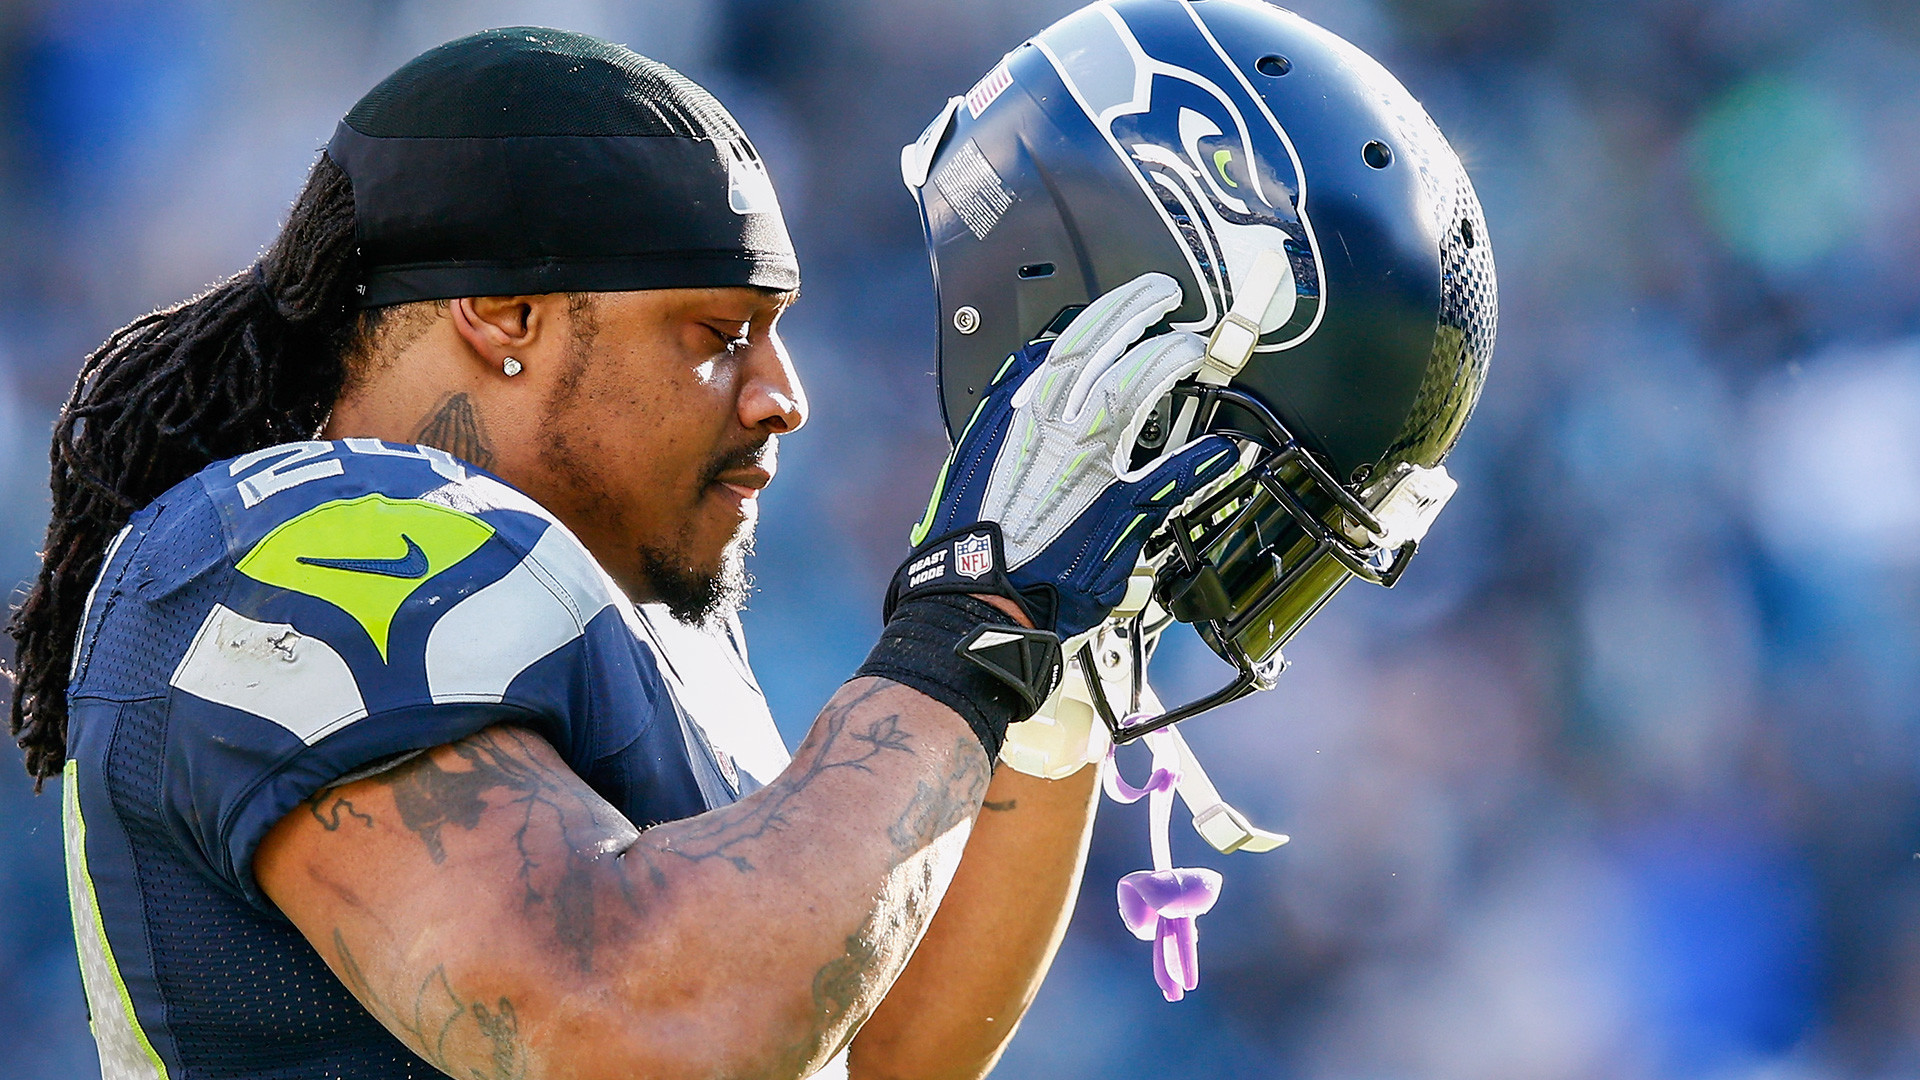 Marshawn Lynch return? Raiders might pull RB from retirement, report says |  NFL | Sporting News